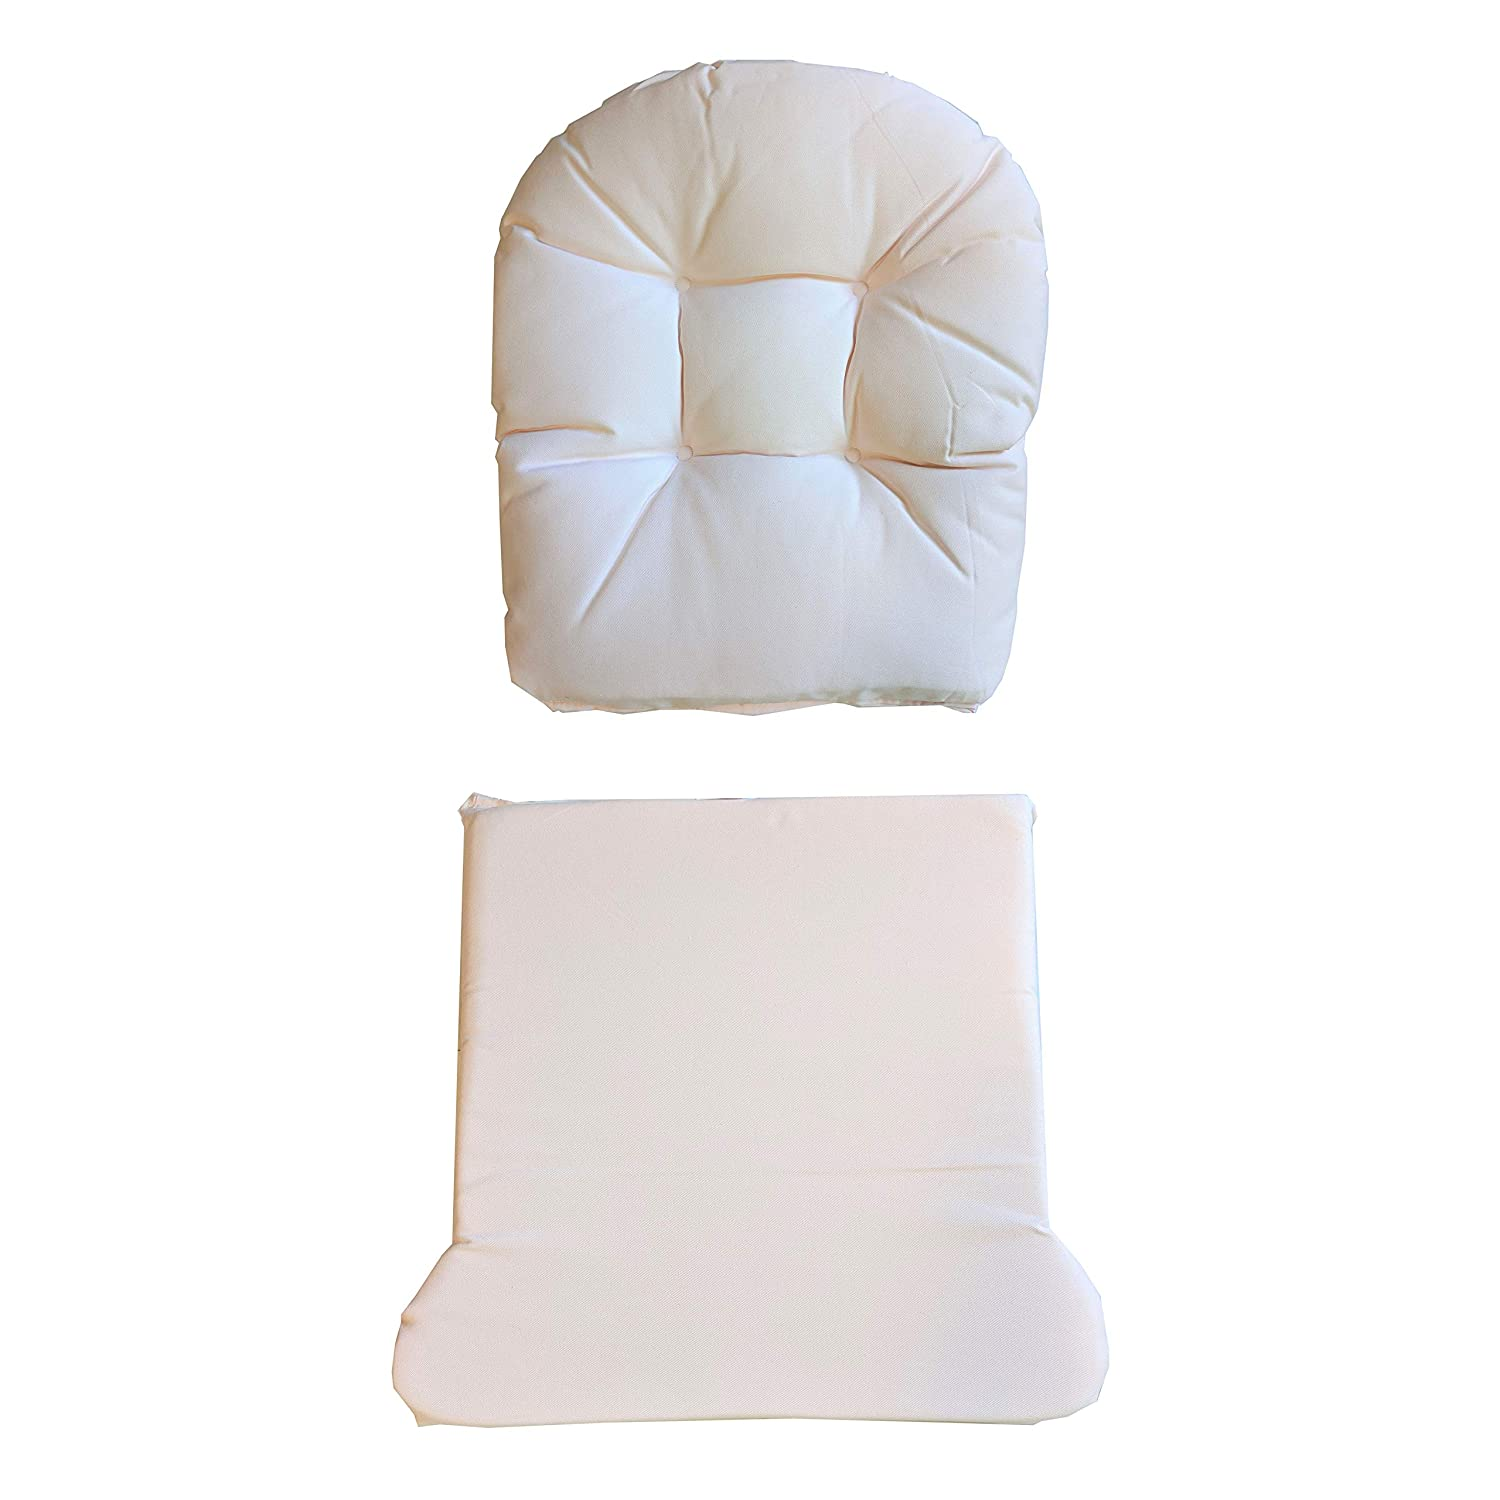 Durable and Spot Cleanable Storkcraft Hoop Glider and Ottoman Replacement Cushion Set 5 Pieces Pink Stylish Cushion Replacement Set for Glider and Ottoman Padded Arm Rests